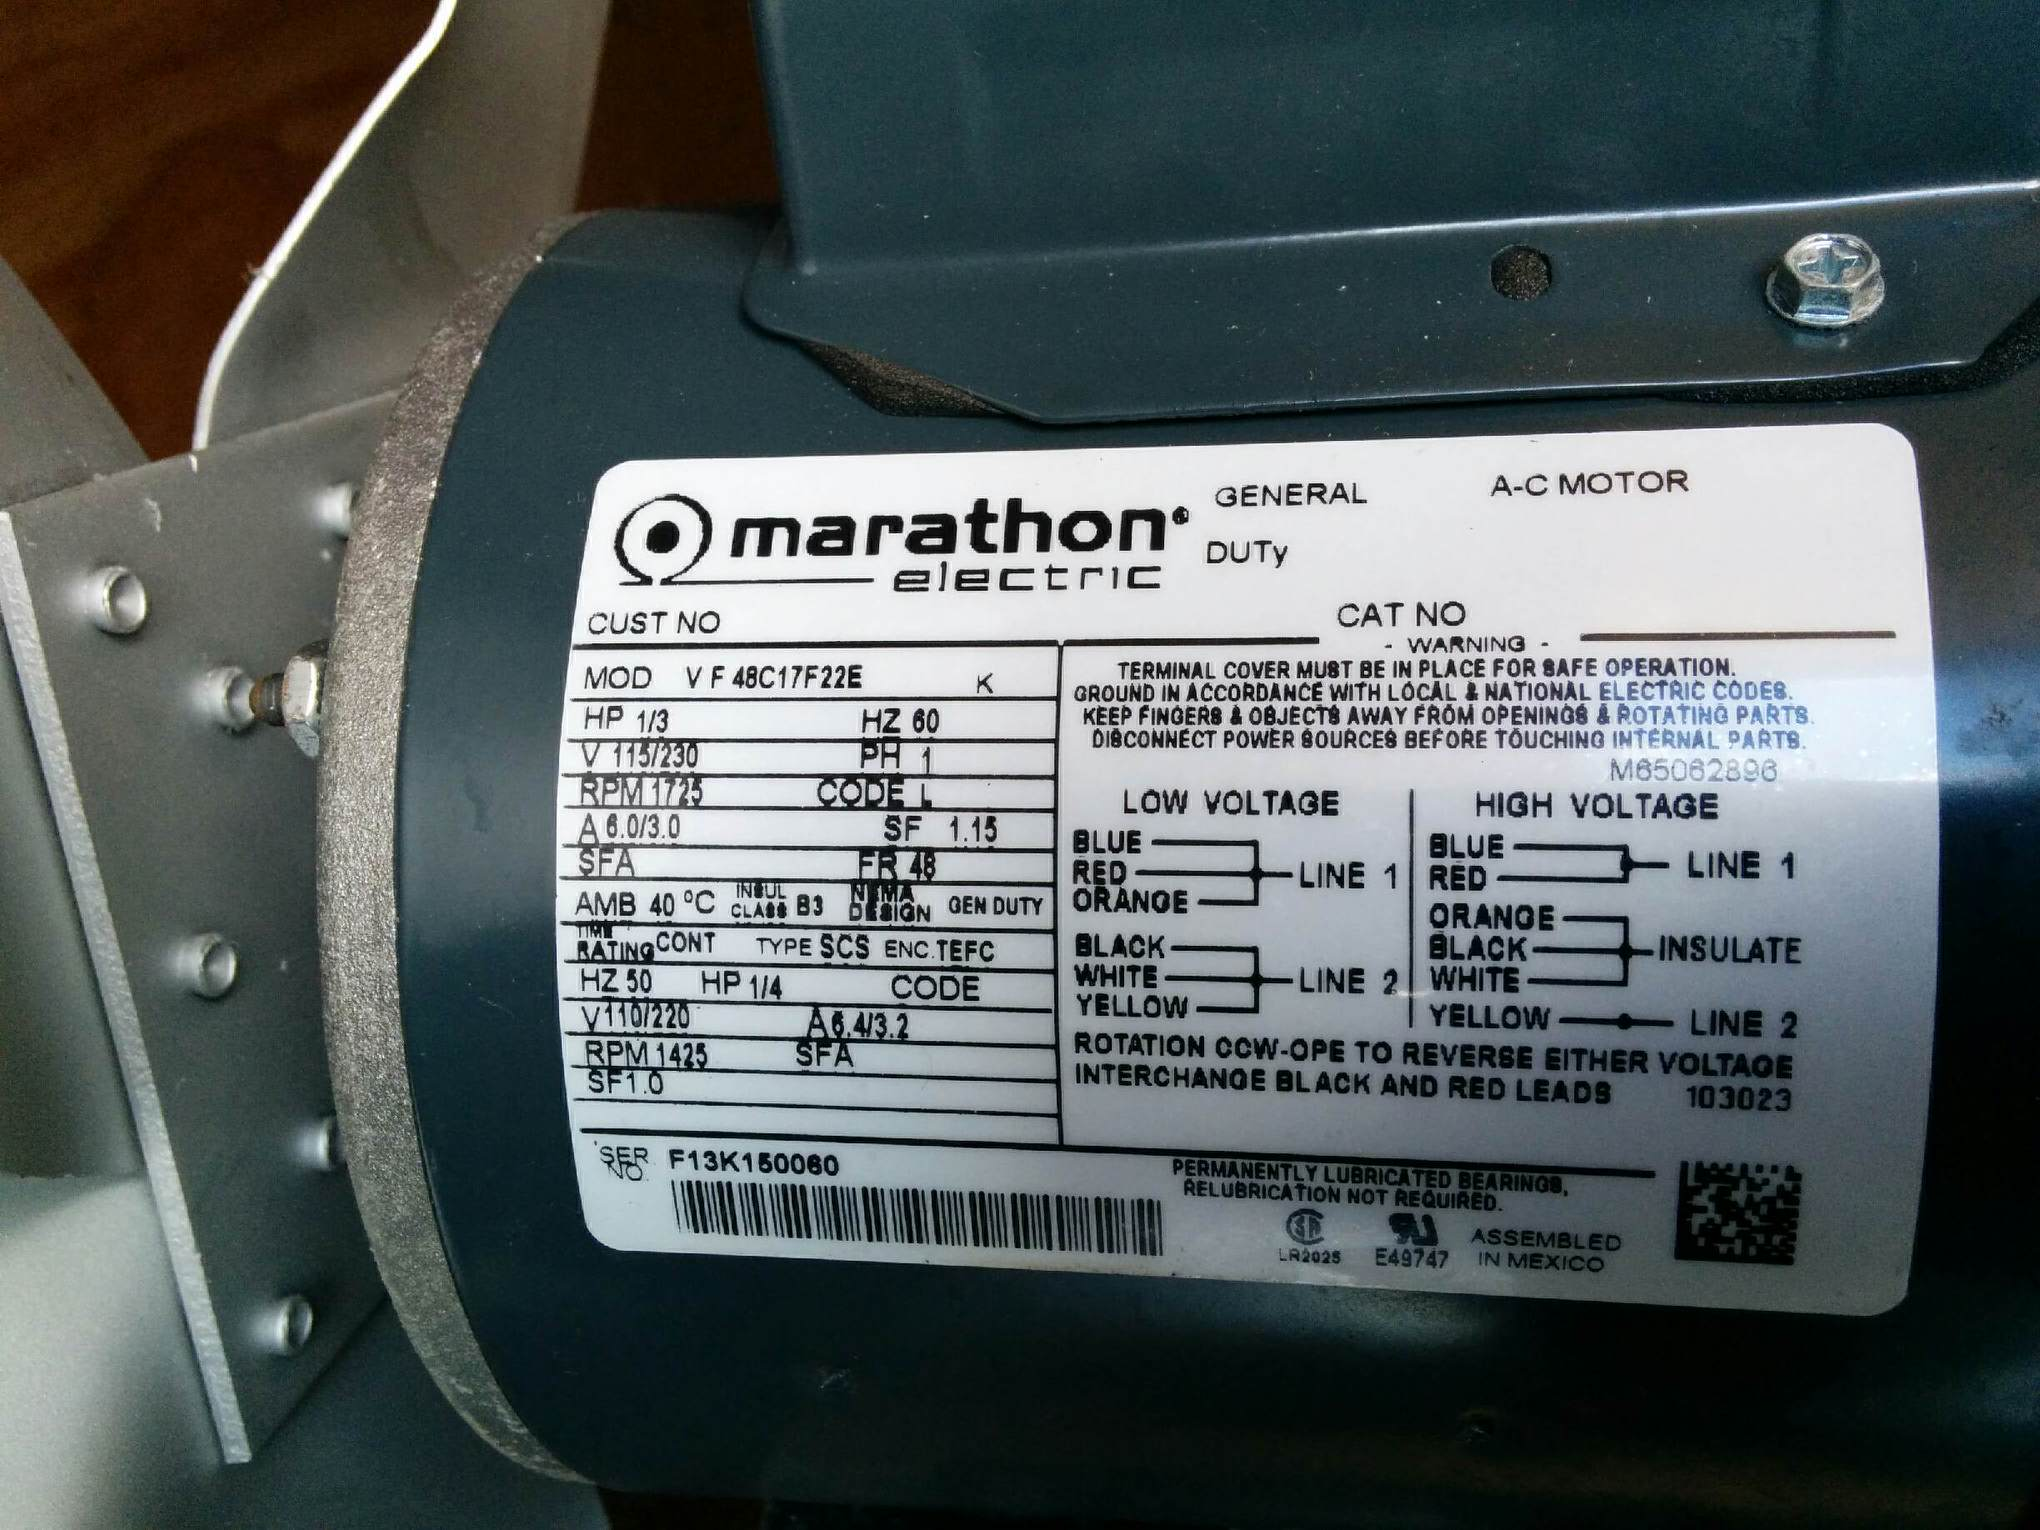 I Have A Marathon Electric Motor  1  3 Hp   Im Trying To